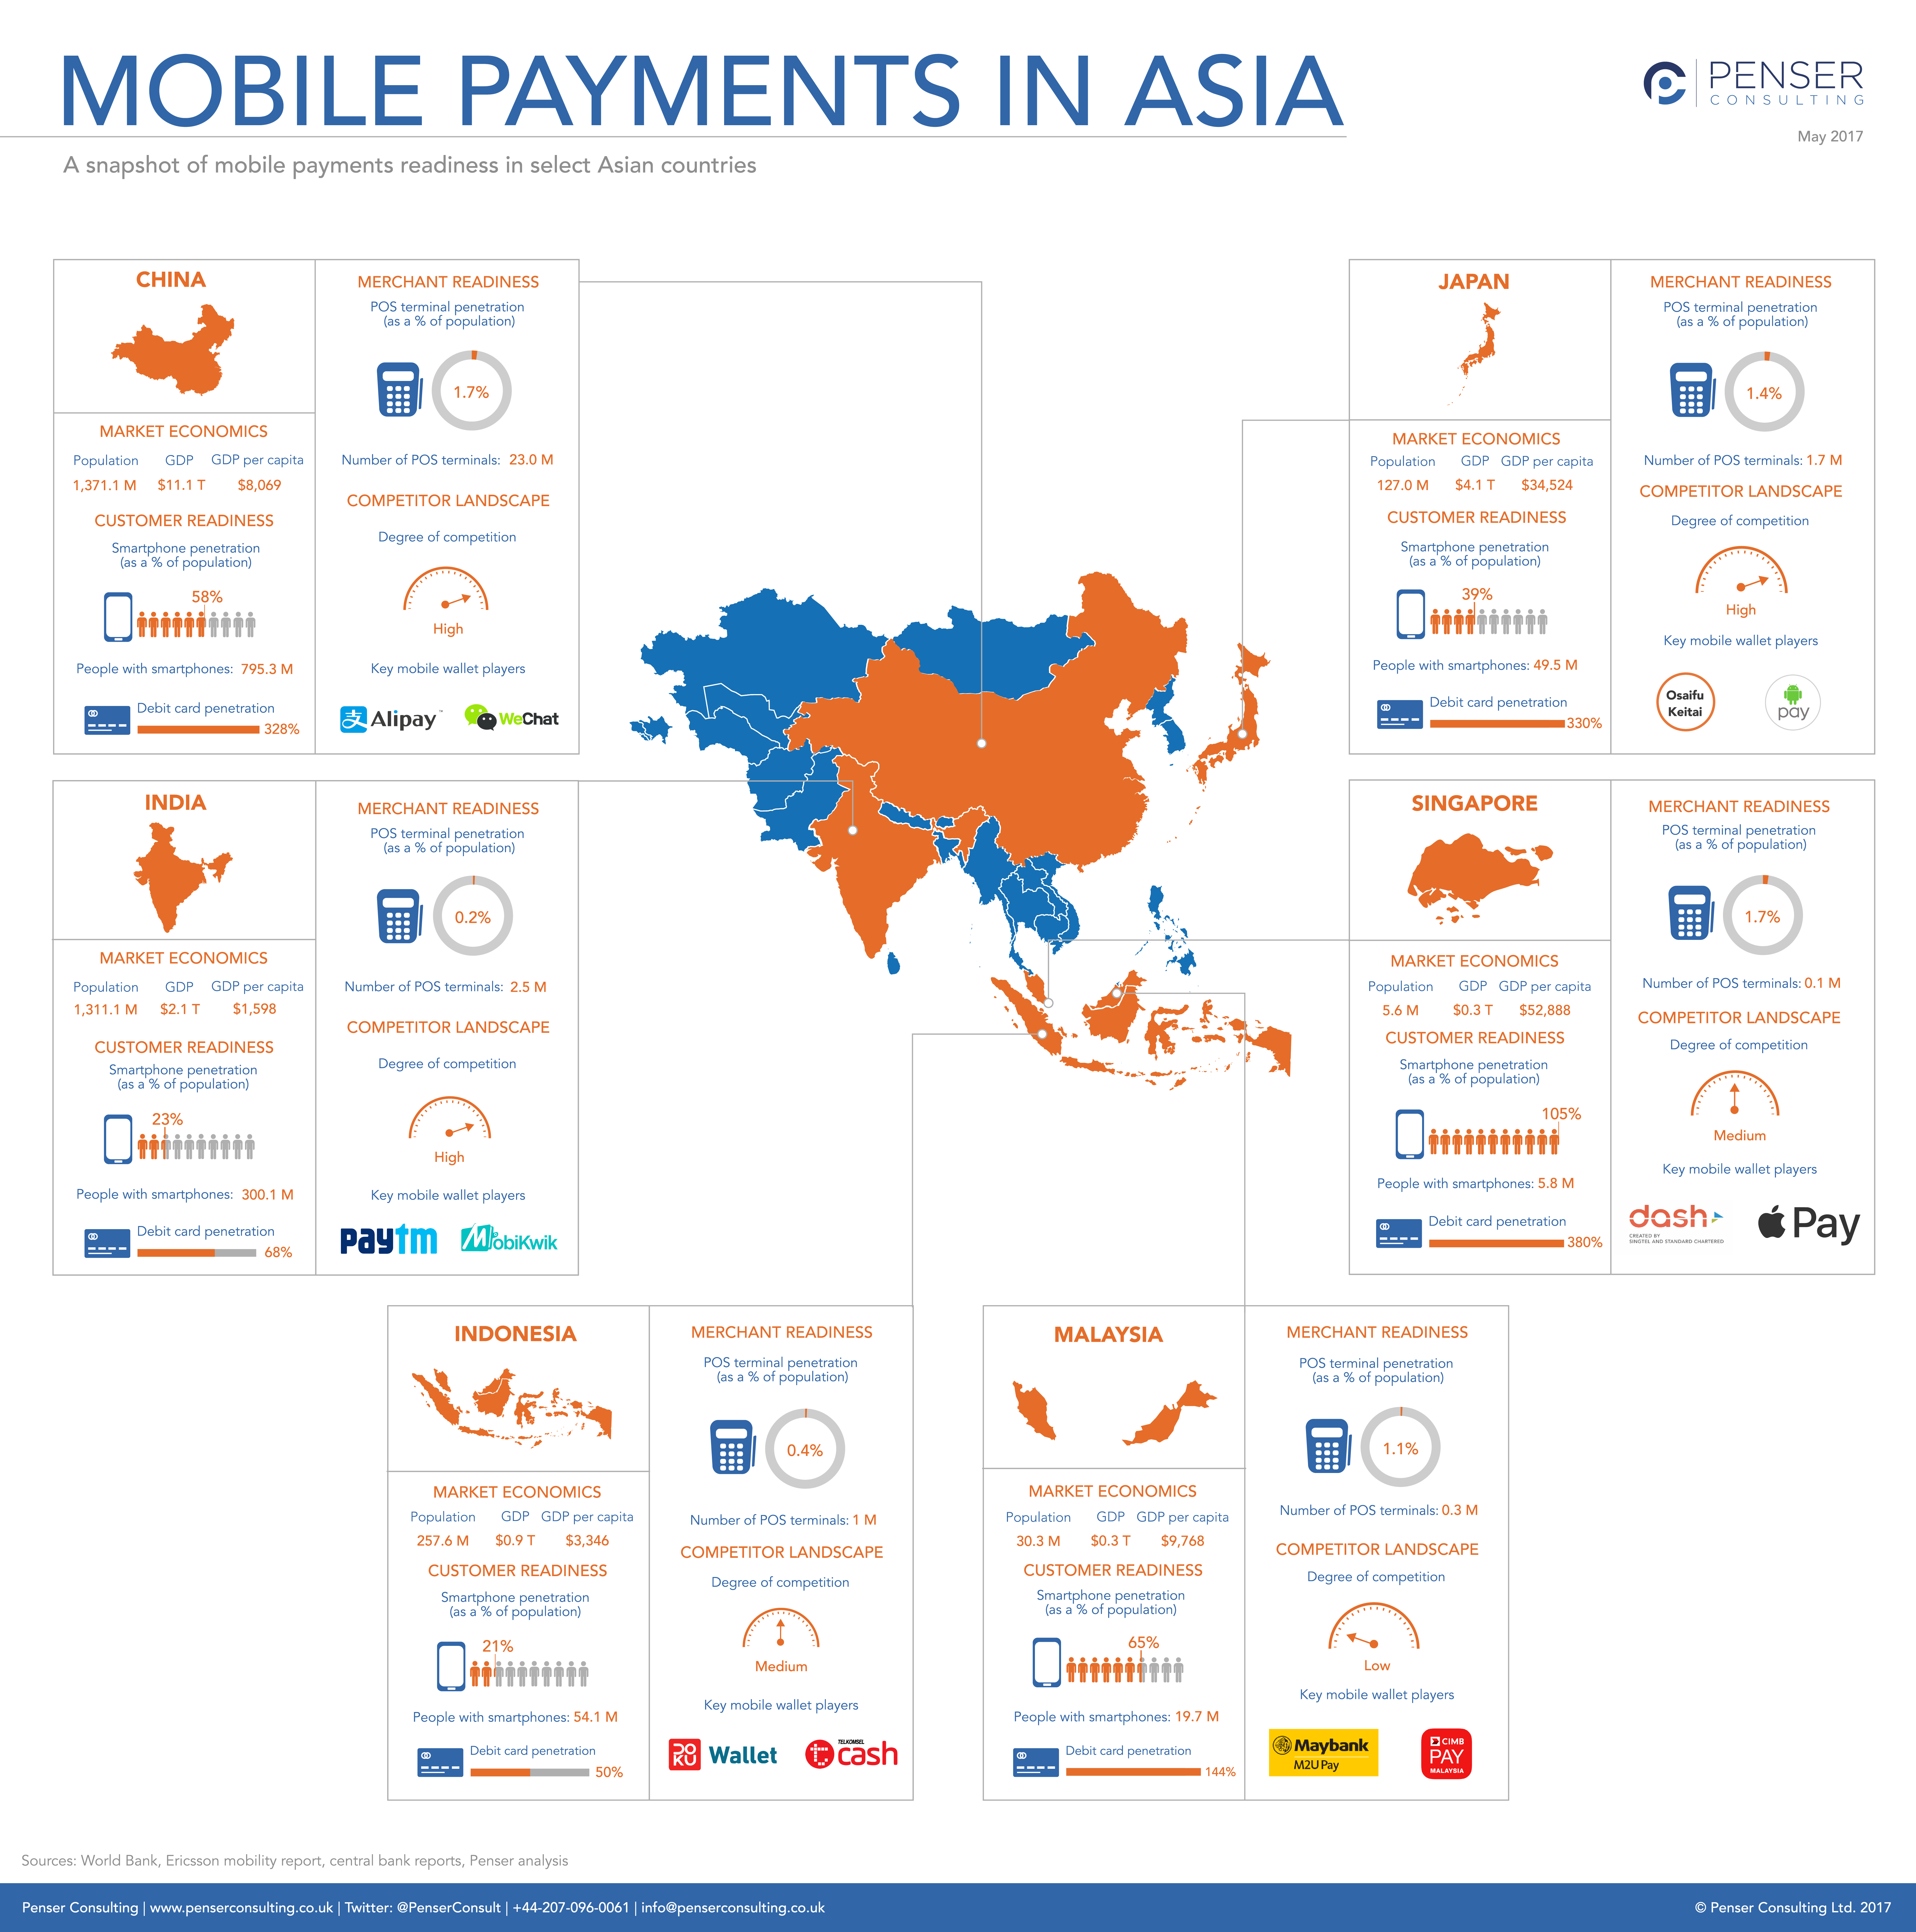 A snapshot of mobile payments readiness in select Asian